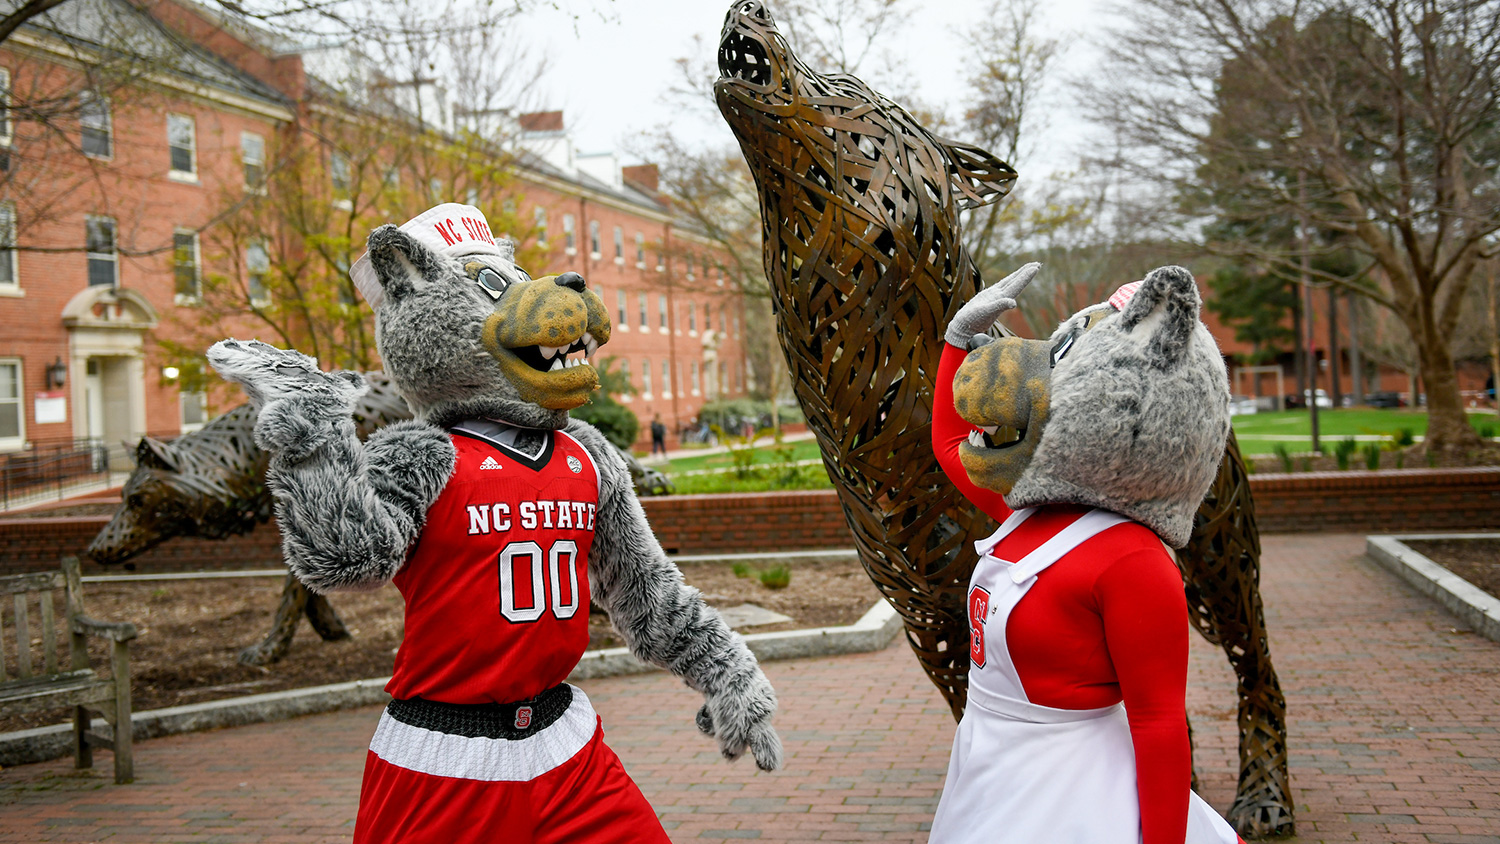 Career Connections - College of Natural Resources at NCState University